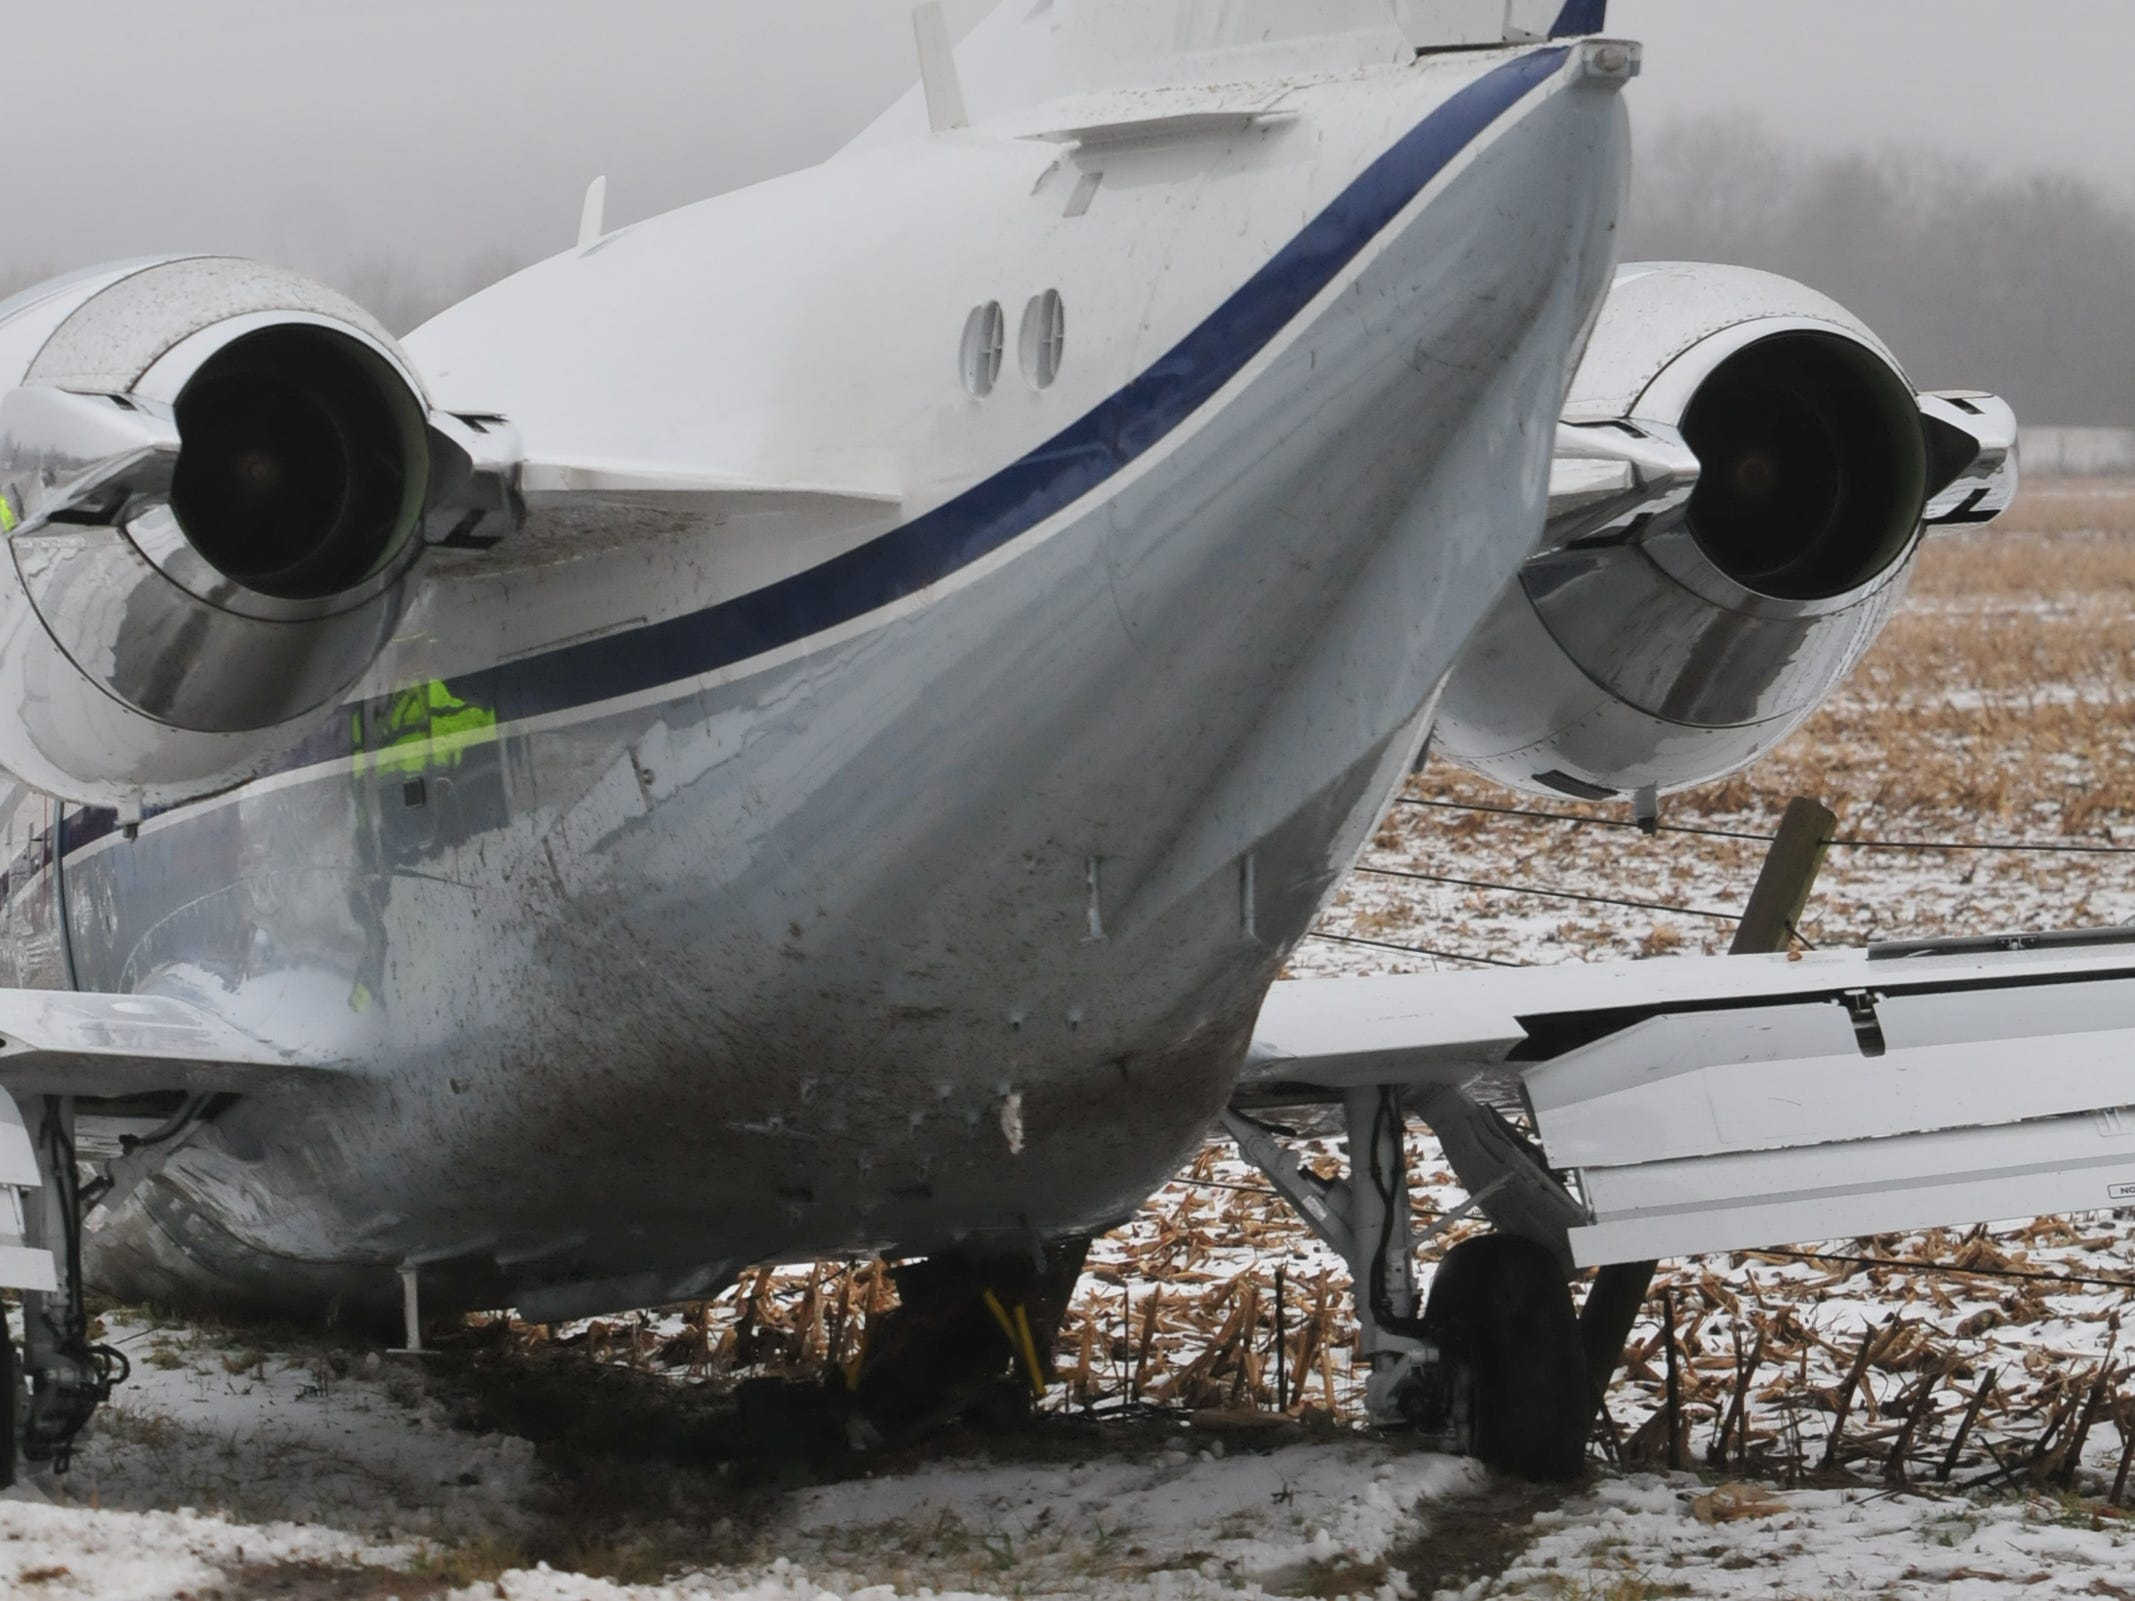 A chartered airplane skidded on a snow-covered, Richmond Municipal Airport runway Monday. It plowed off the runway, through a field, across Indiana 227 and into a fence.